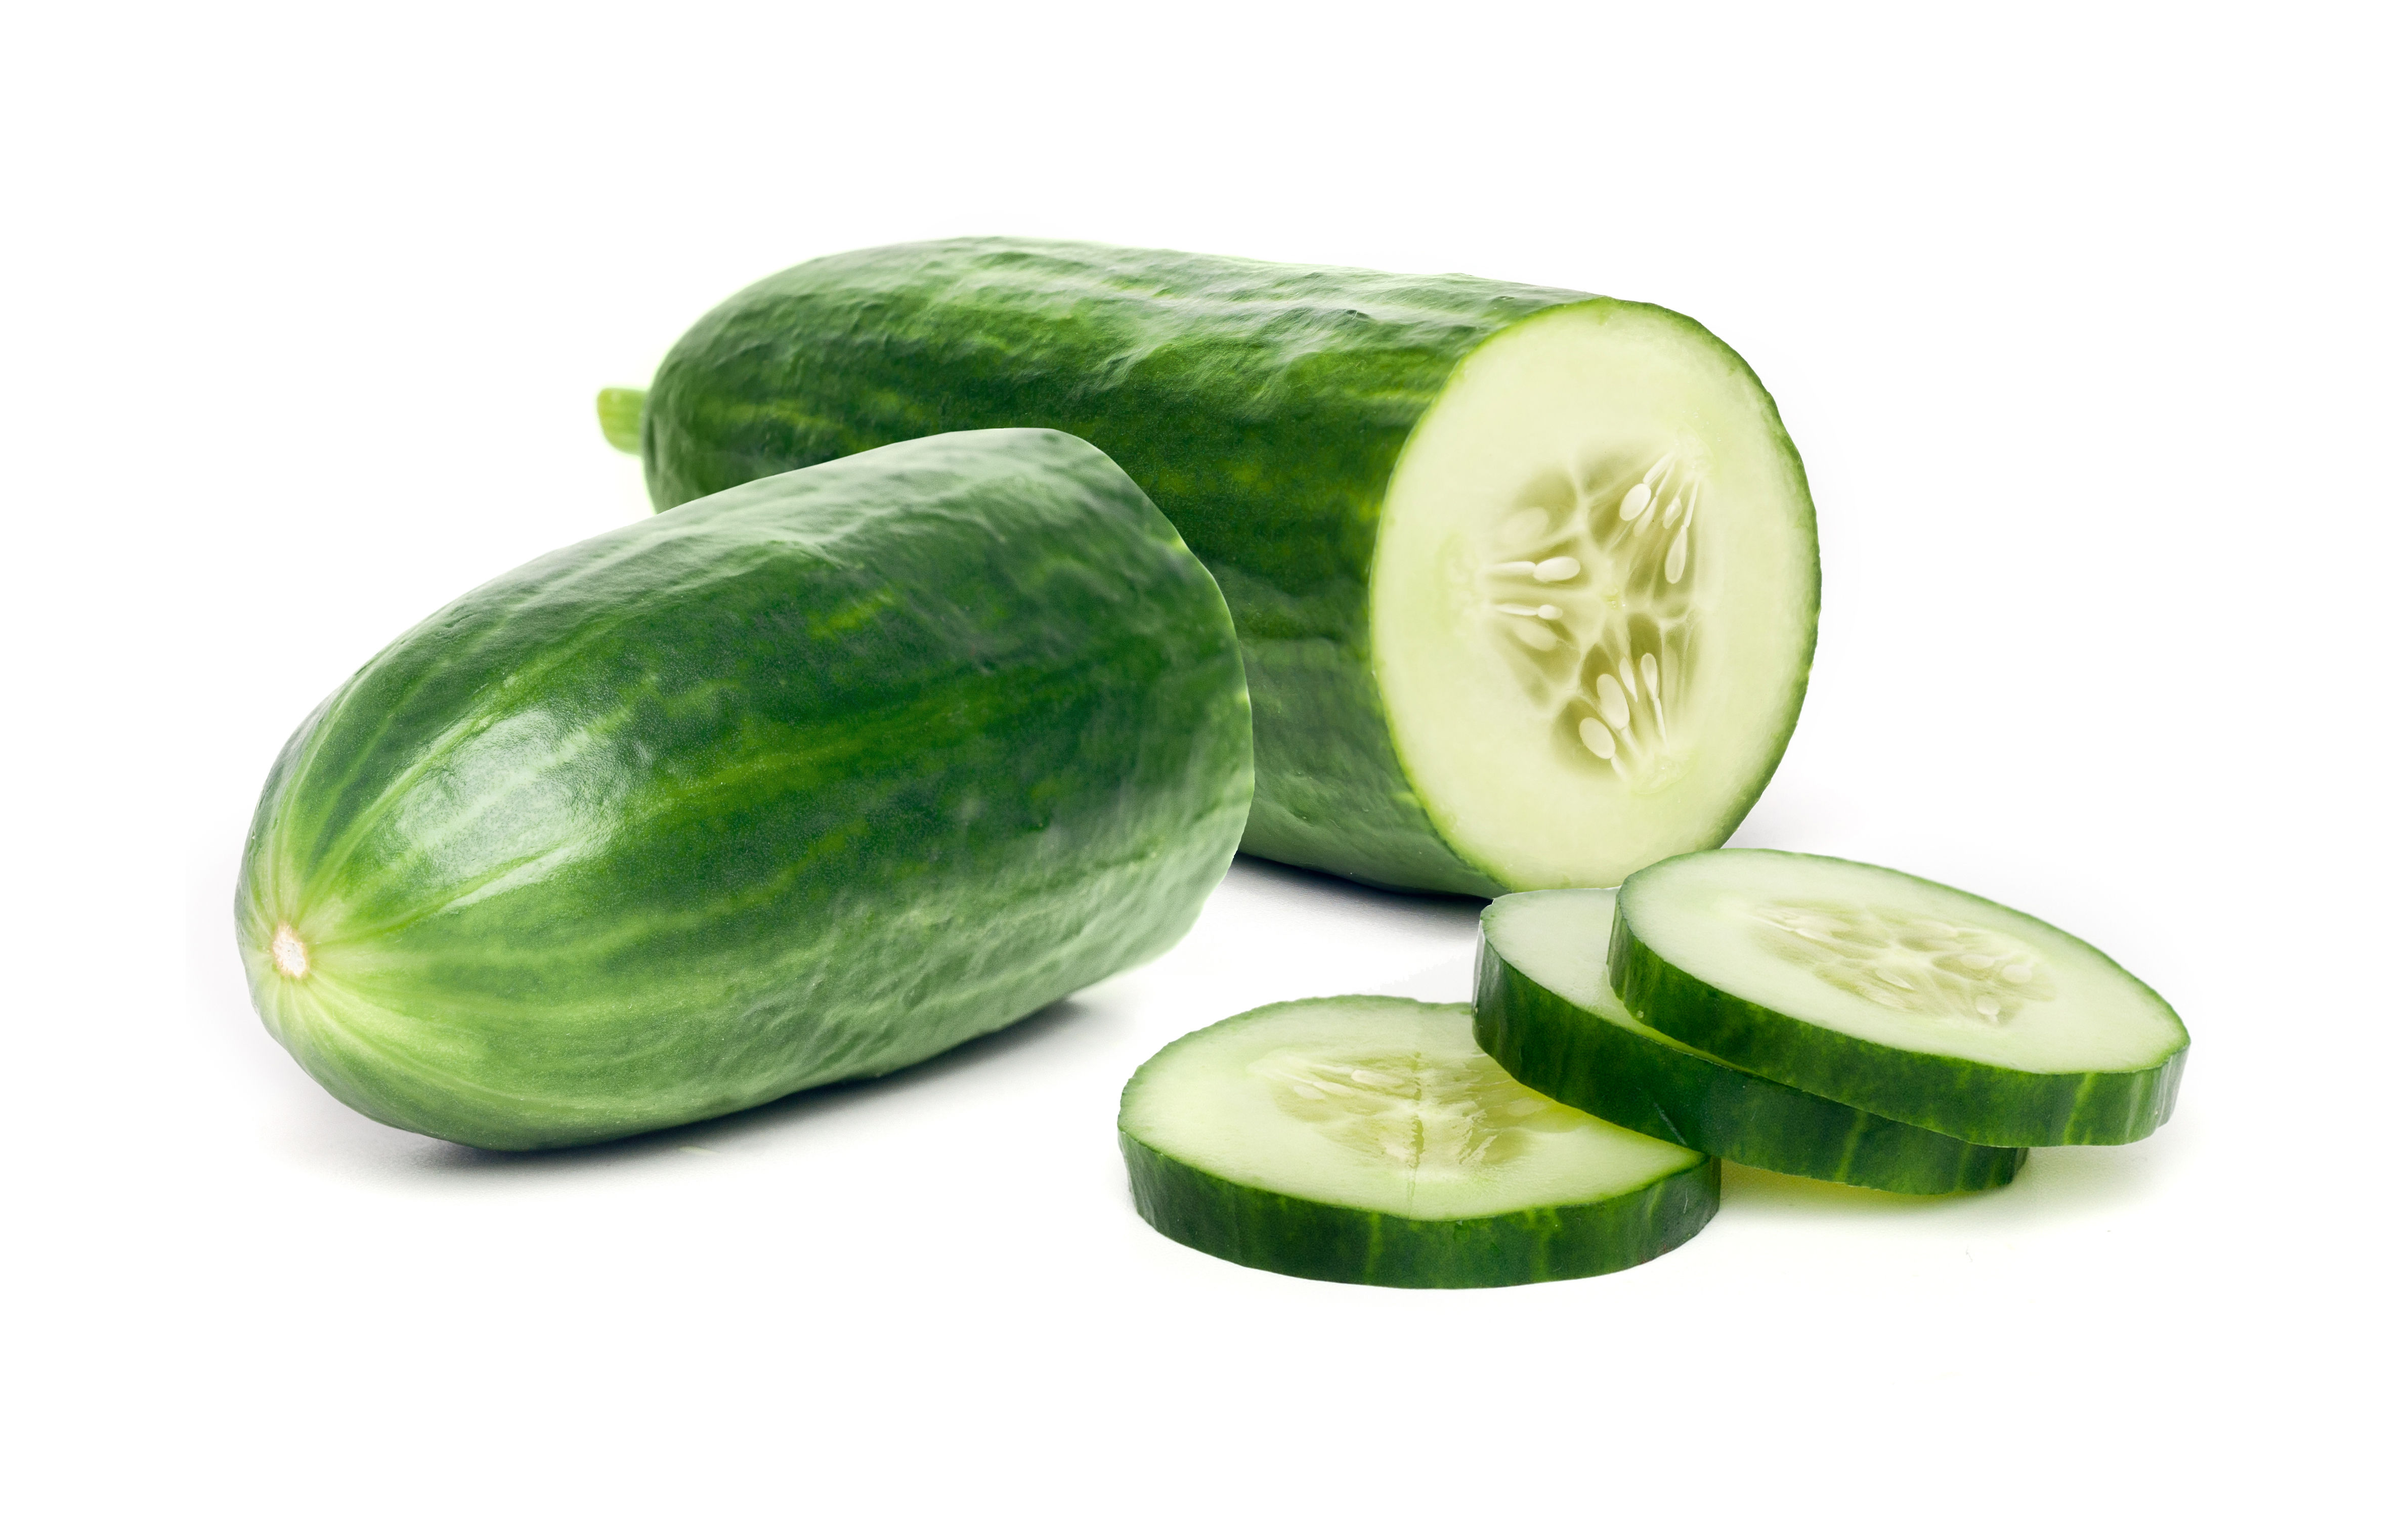 Cucumber for suntan